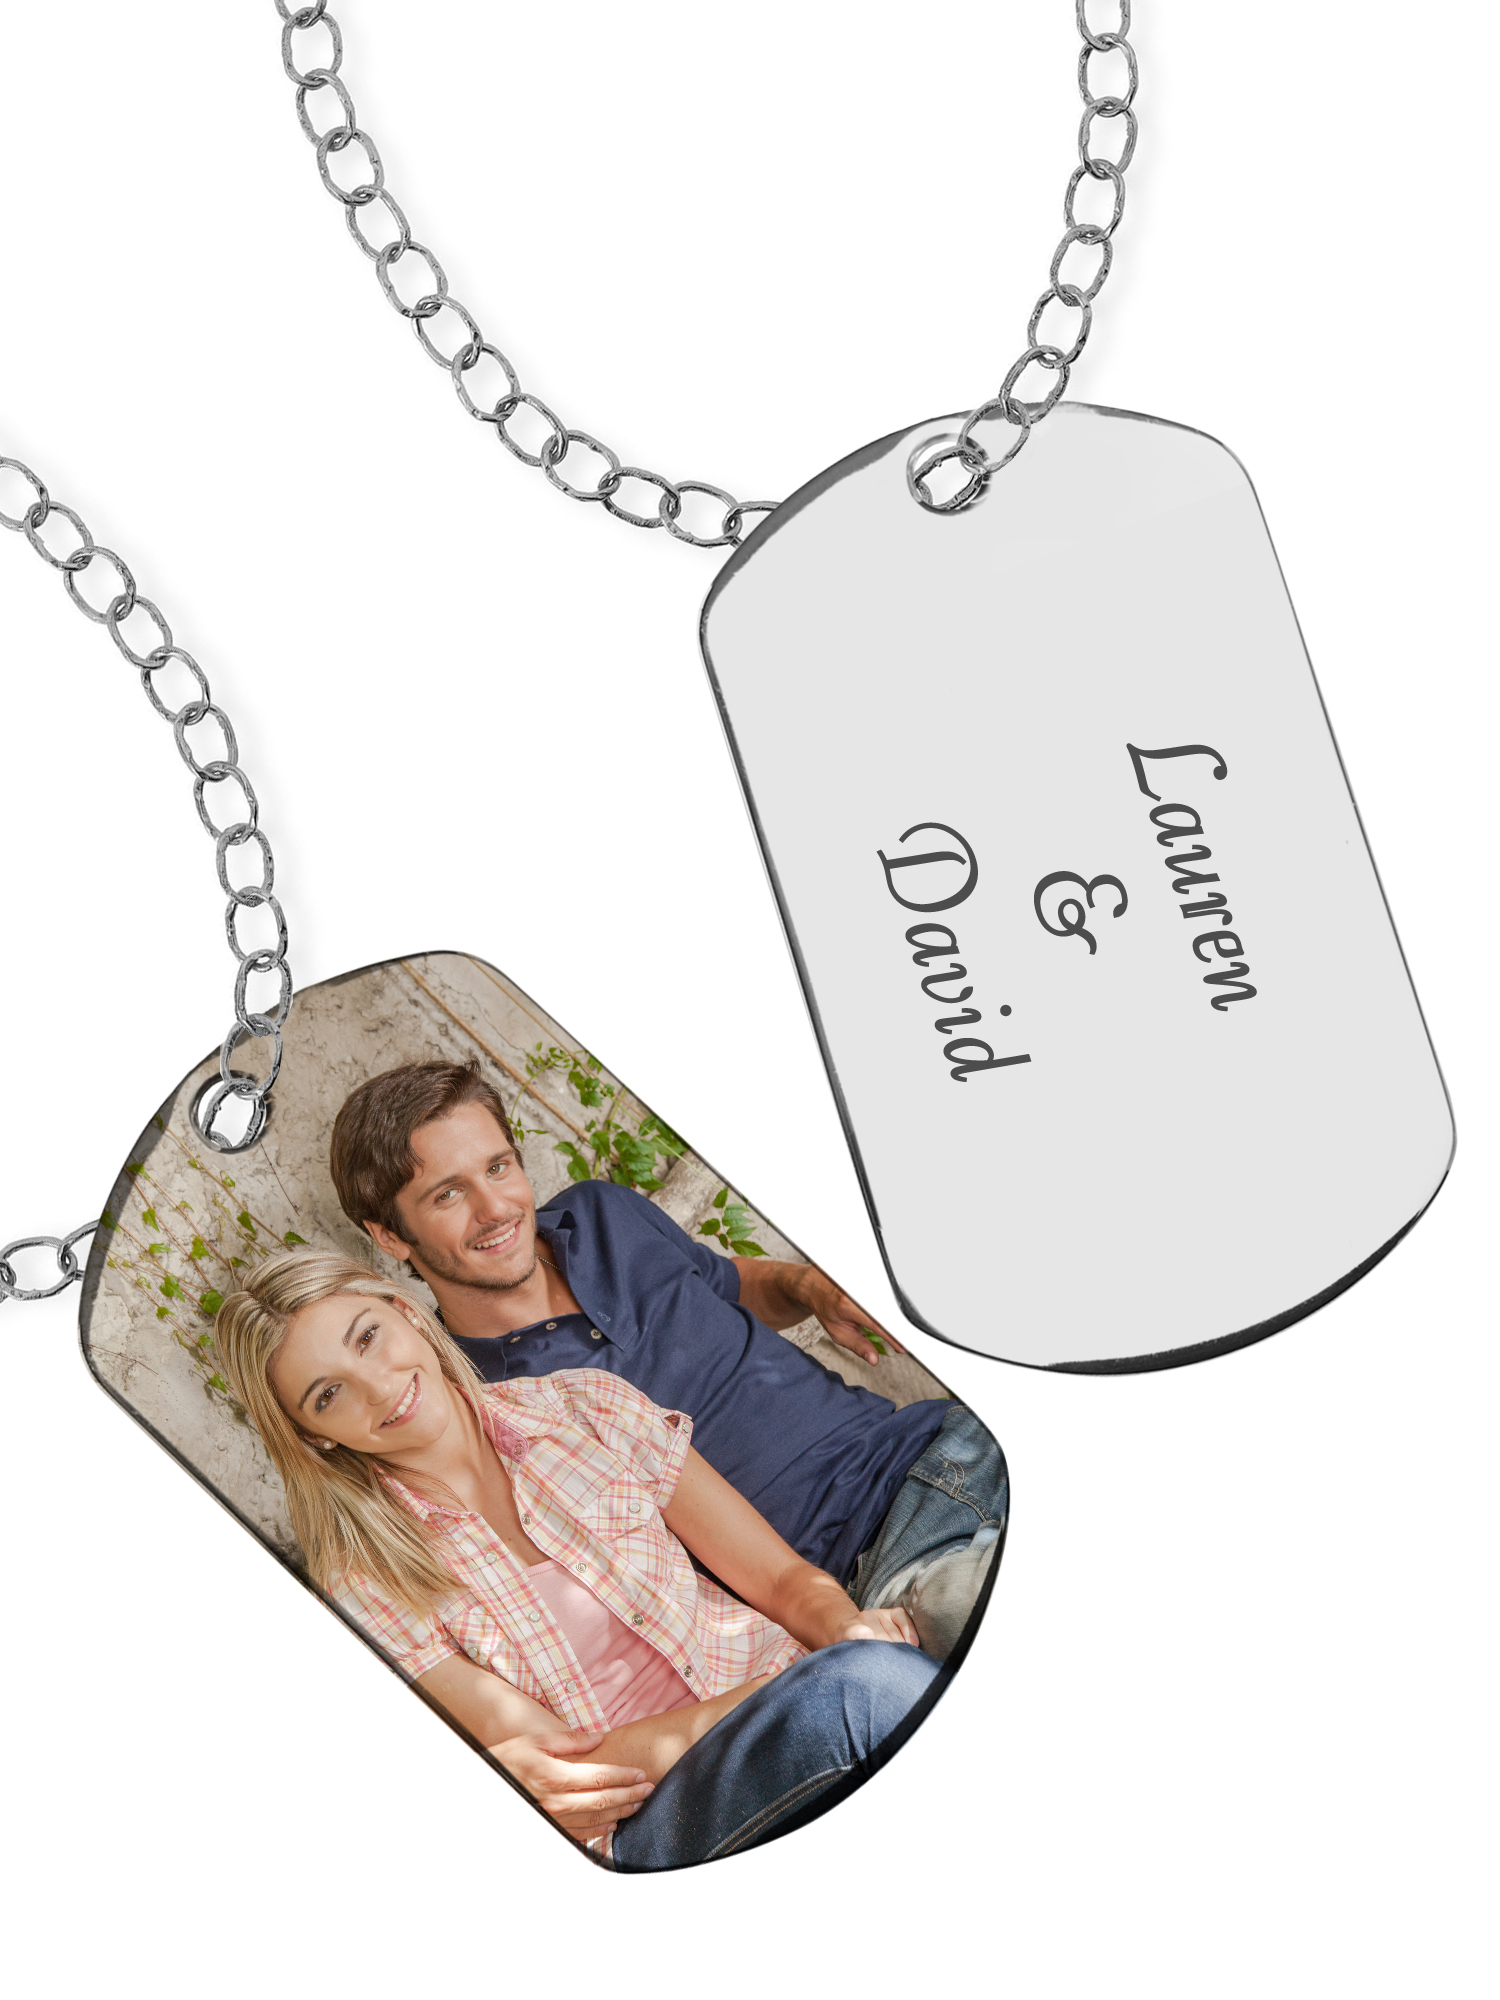 Army Style Dog Tags  Men Boys Soldier Dog Tags Dogtag Chain Necklace Pendant